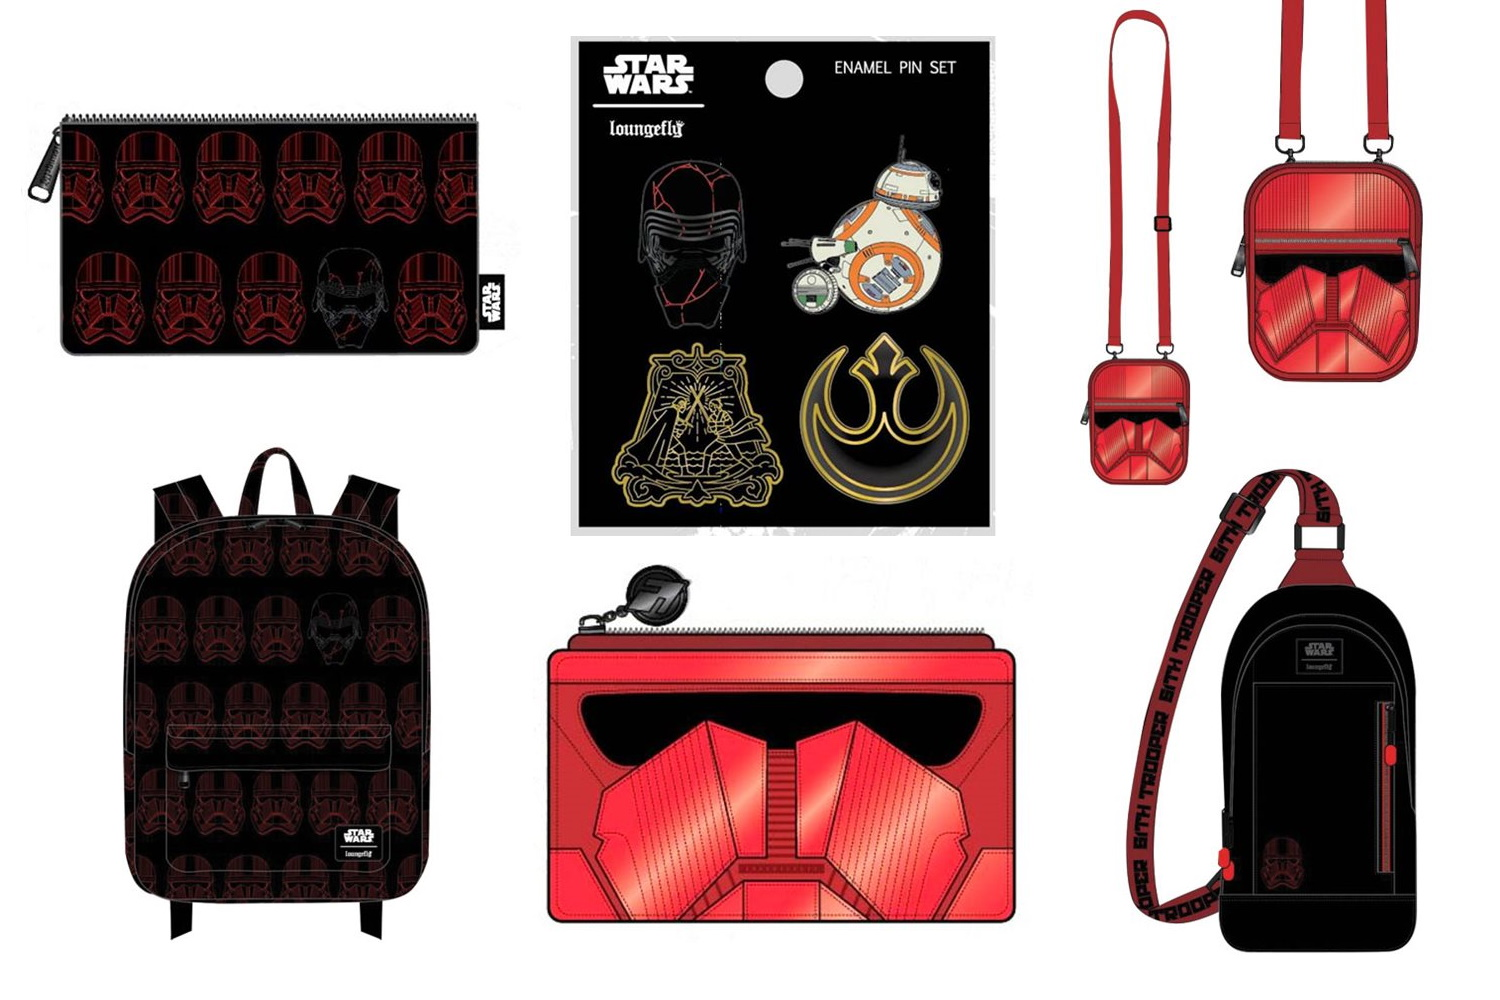 Loungefly Episode 9 Bags at Entertainment Earth